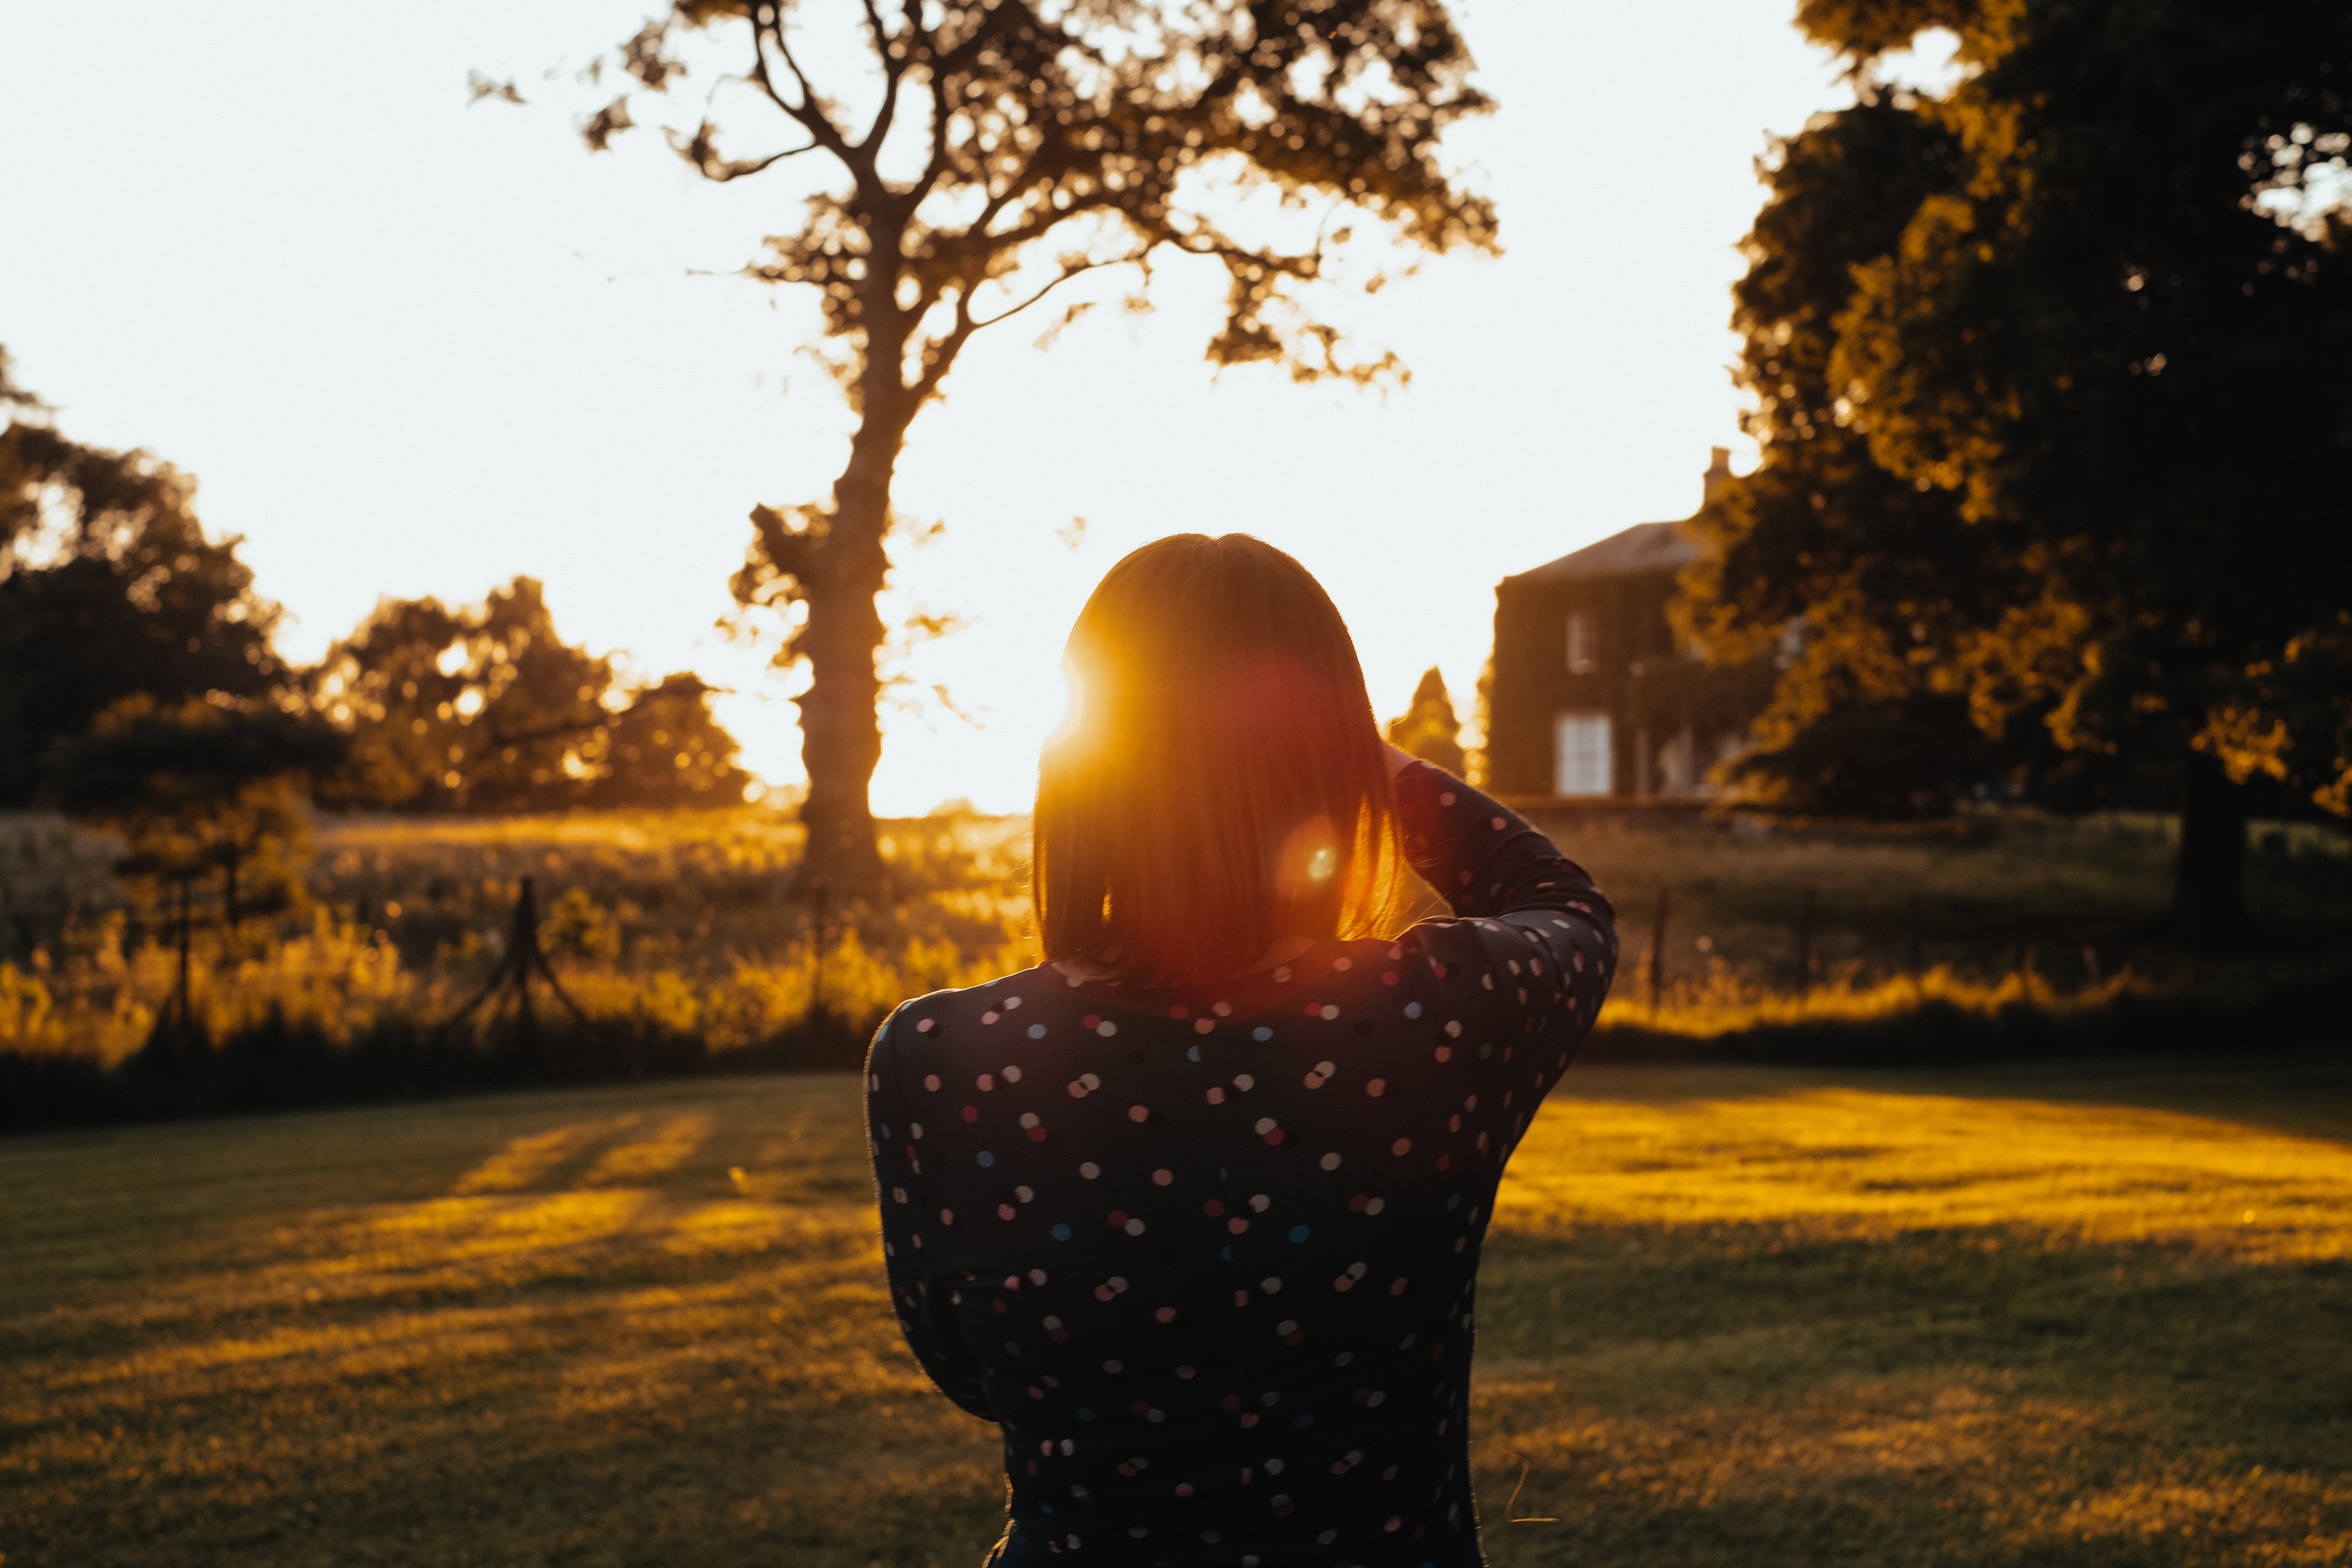 woman wearing black long-sleeved top standing on lawn during sunset